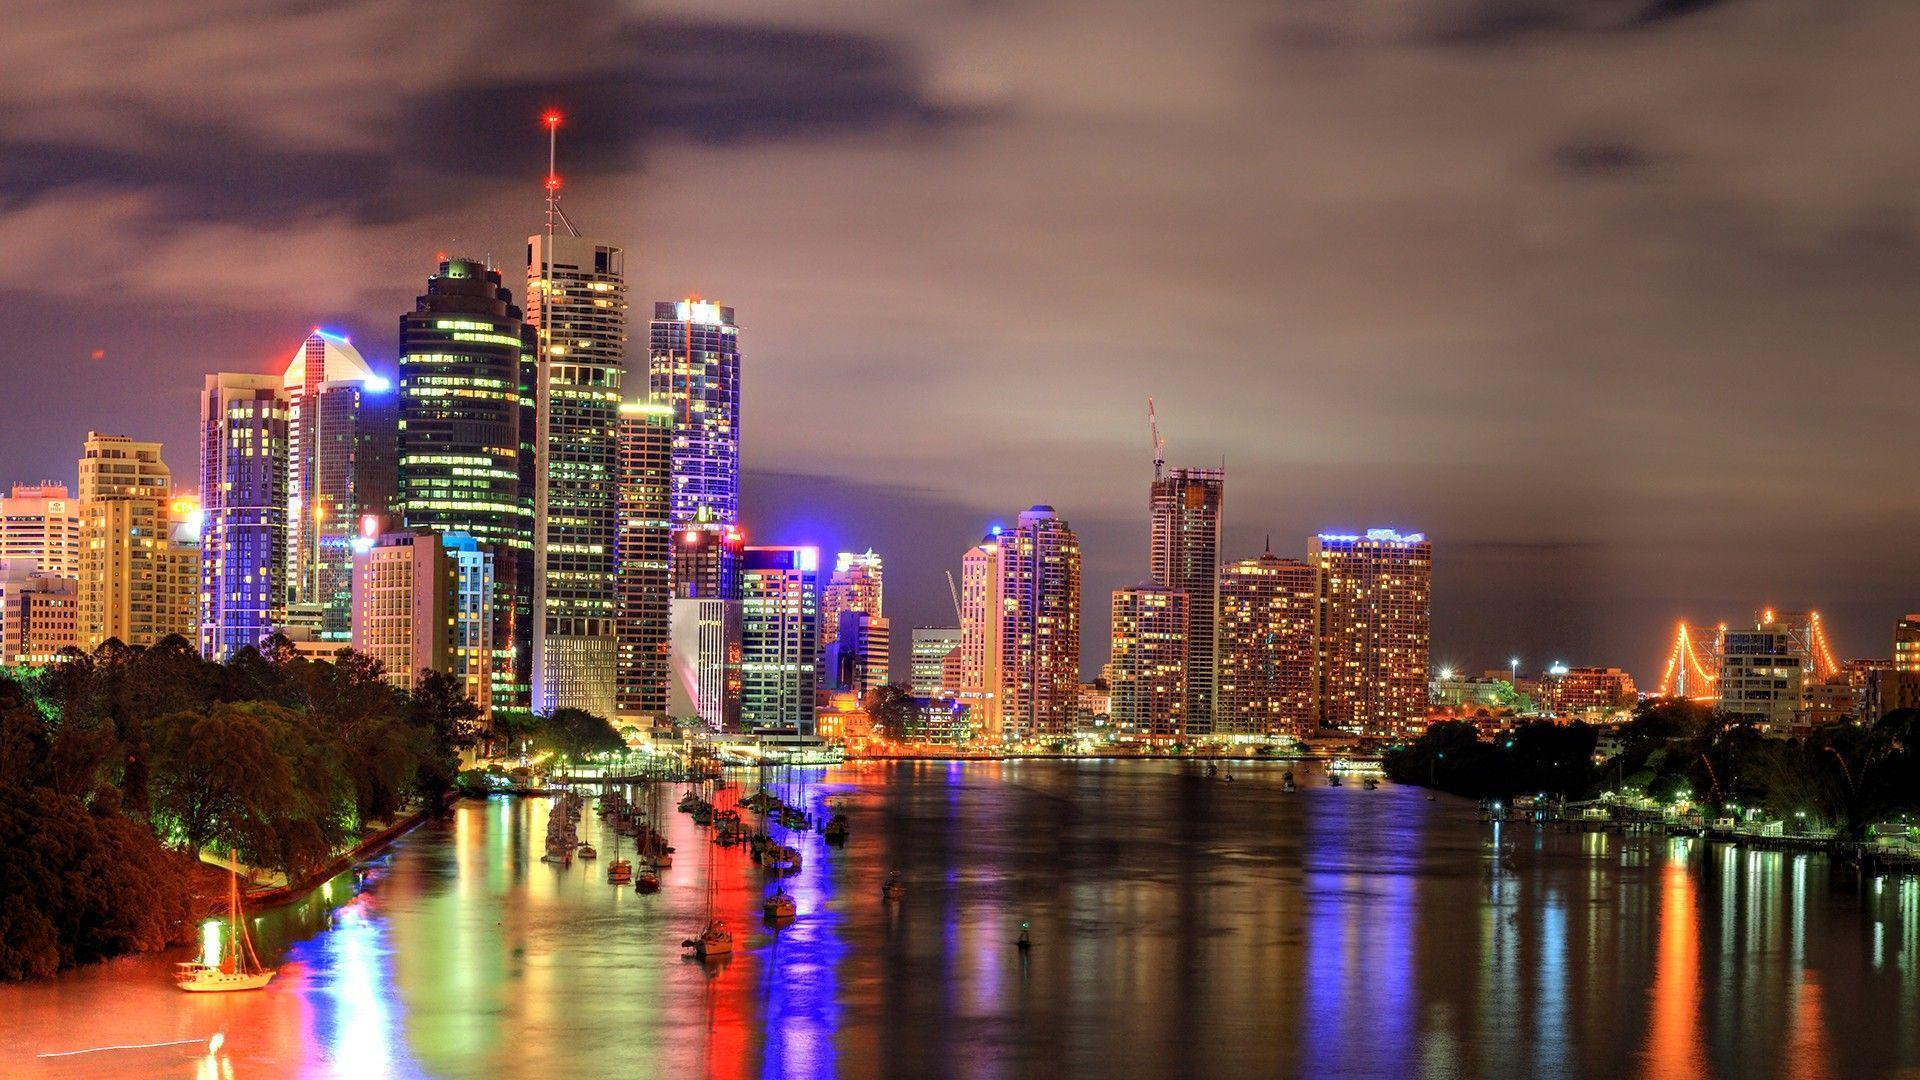 Brisbane by night Wallpaper Australia World (36 Wallpapers ...